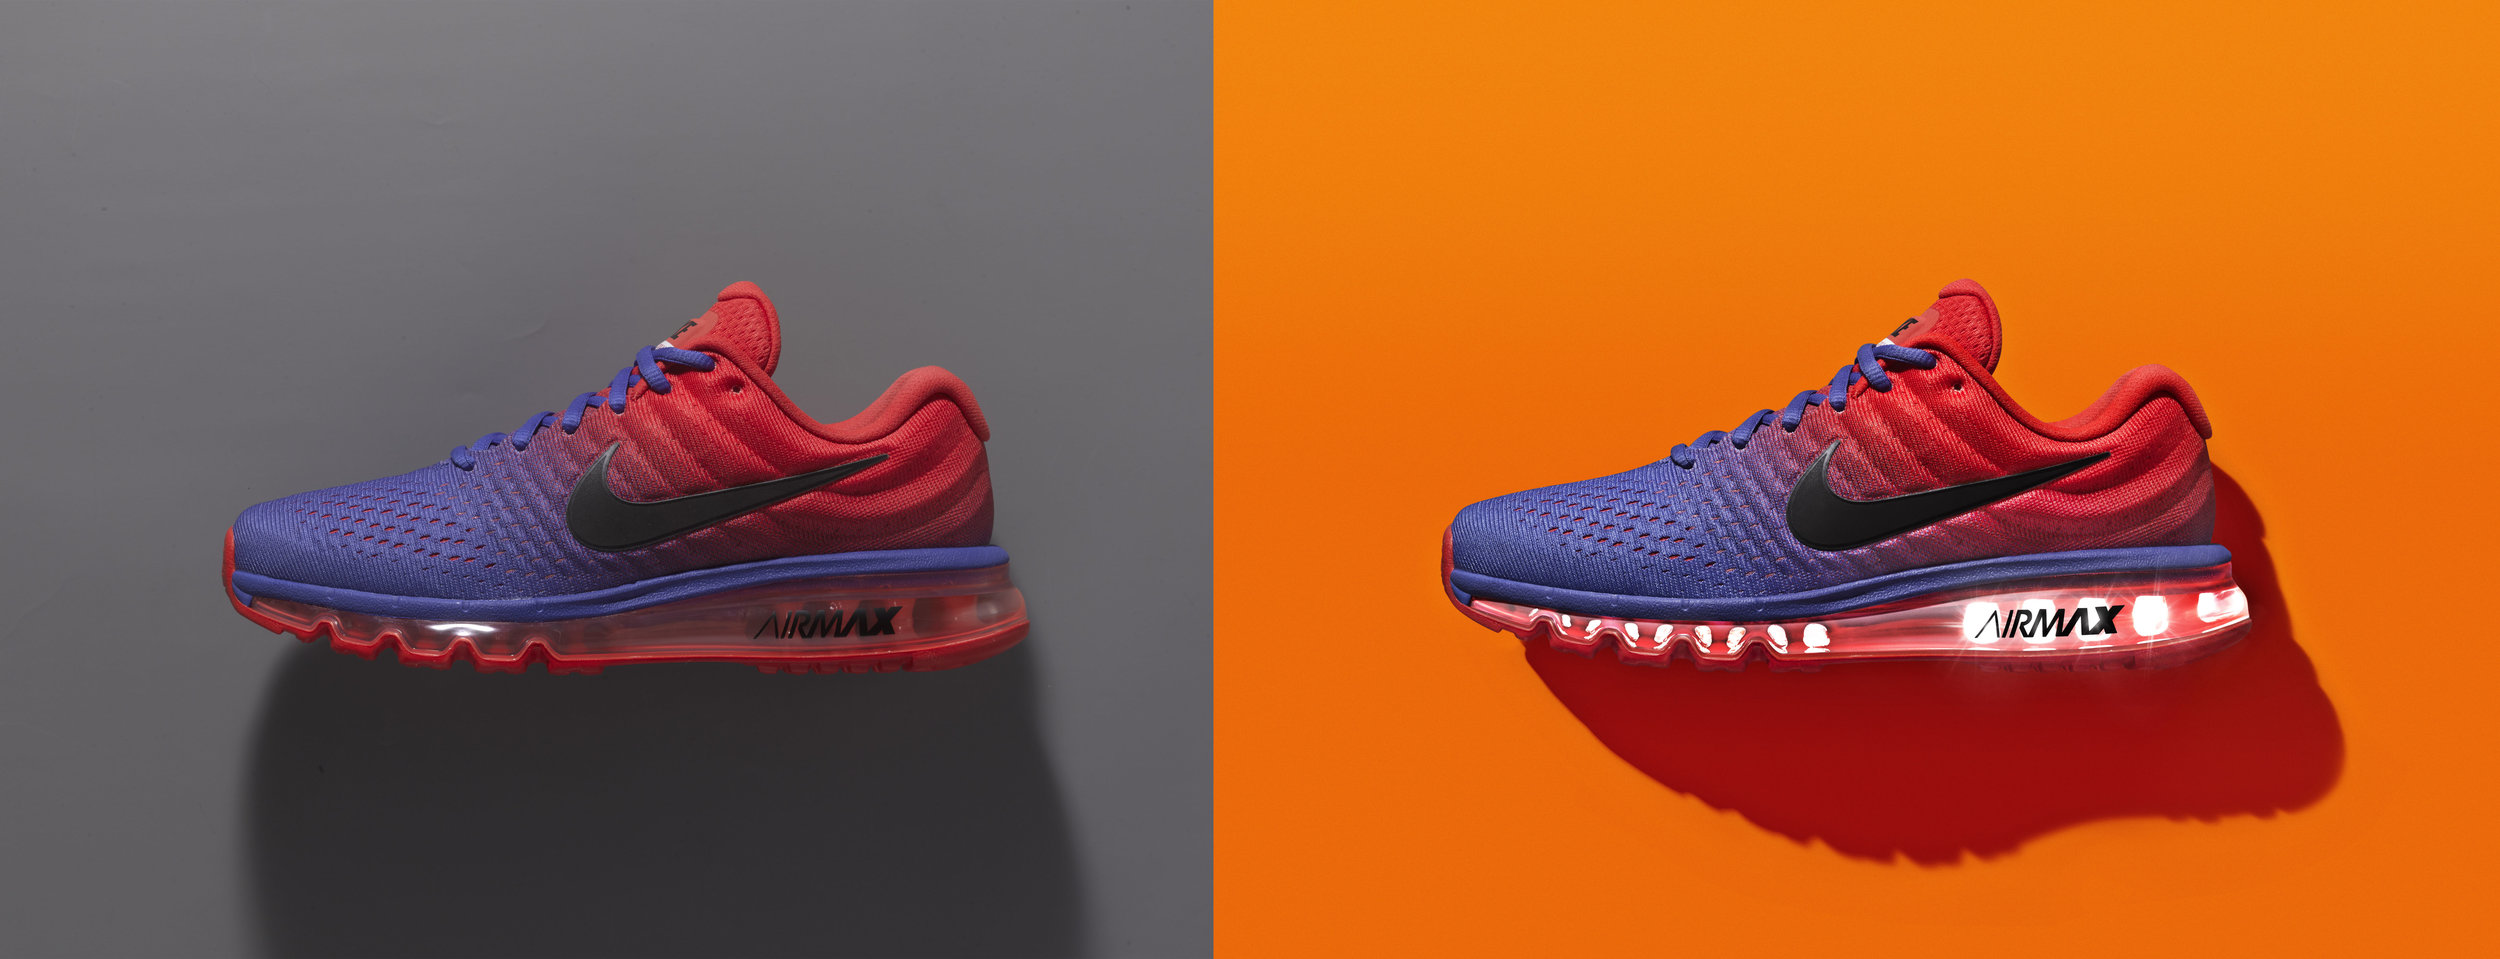 Nike Shoe Retouching Project v3 small side by side.jpg